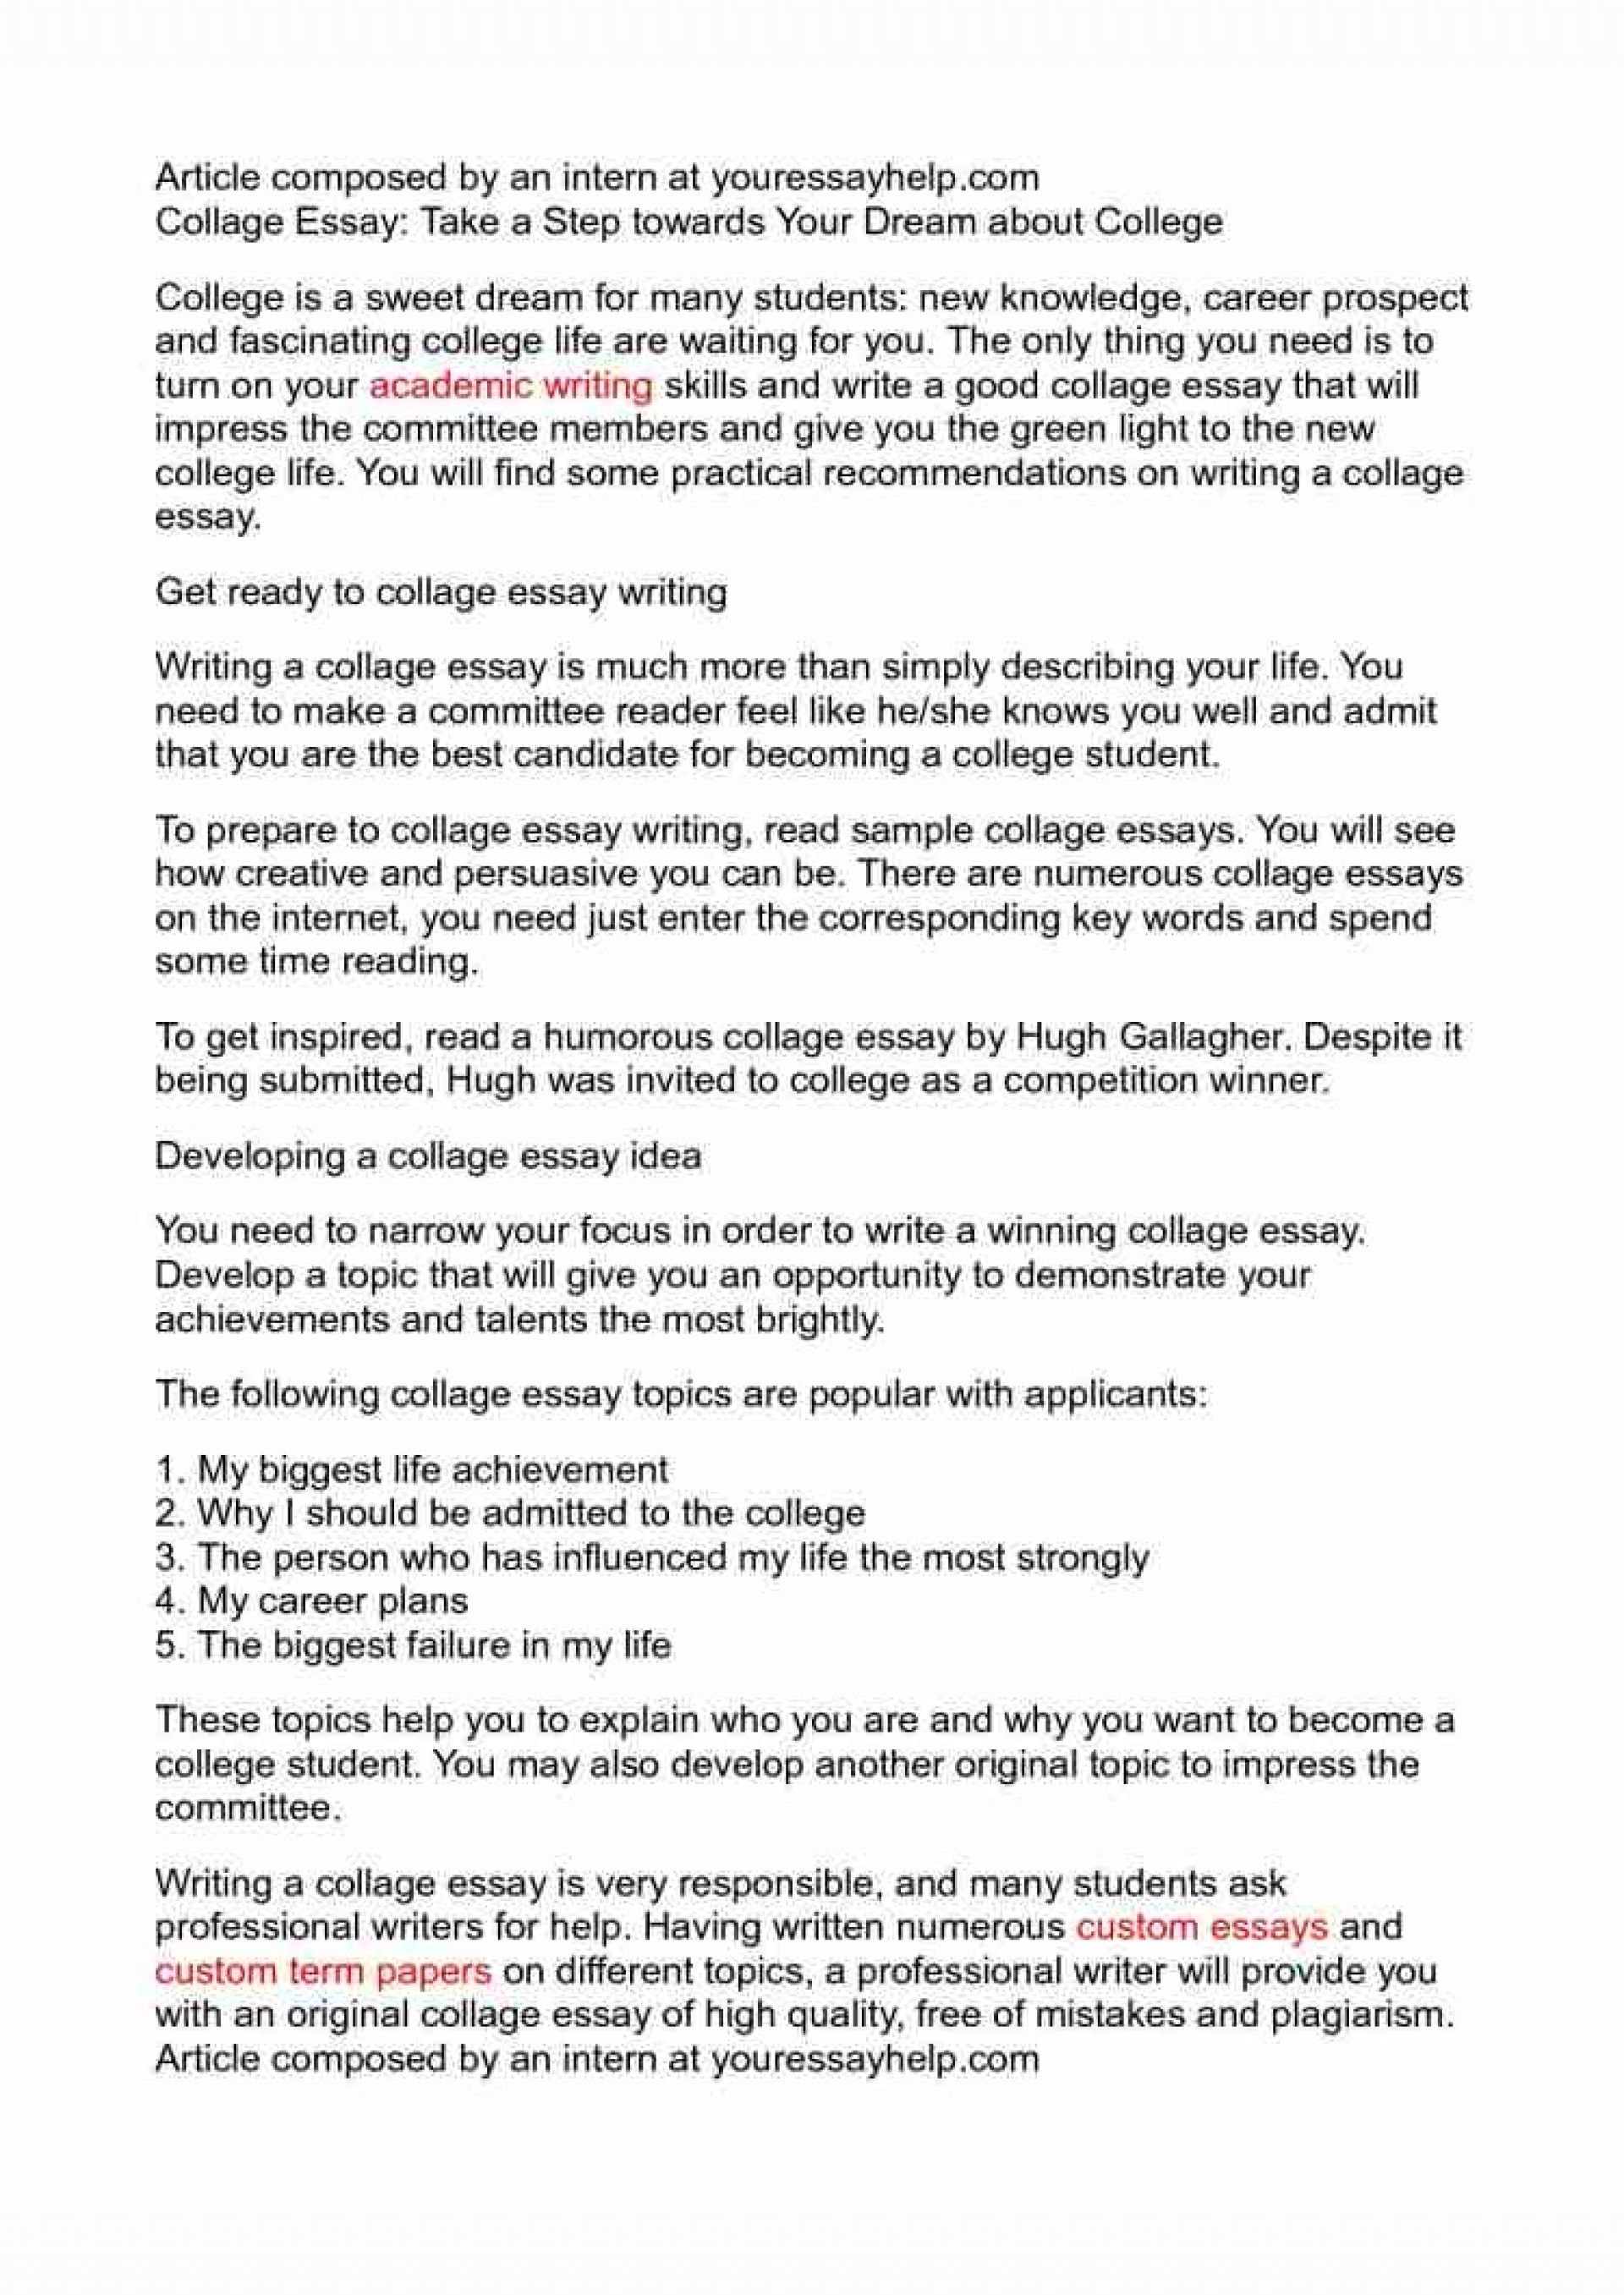 009 Good Descriptive Essays Cover Letter With Really And Rznuxbrdep 750x1060px Archaicawful Essay Example About A Person Examples Famous 3rd 1920